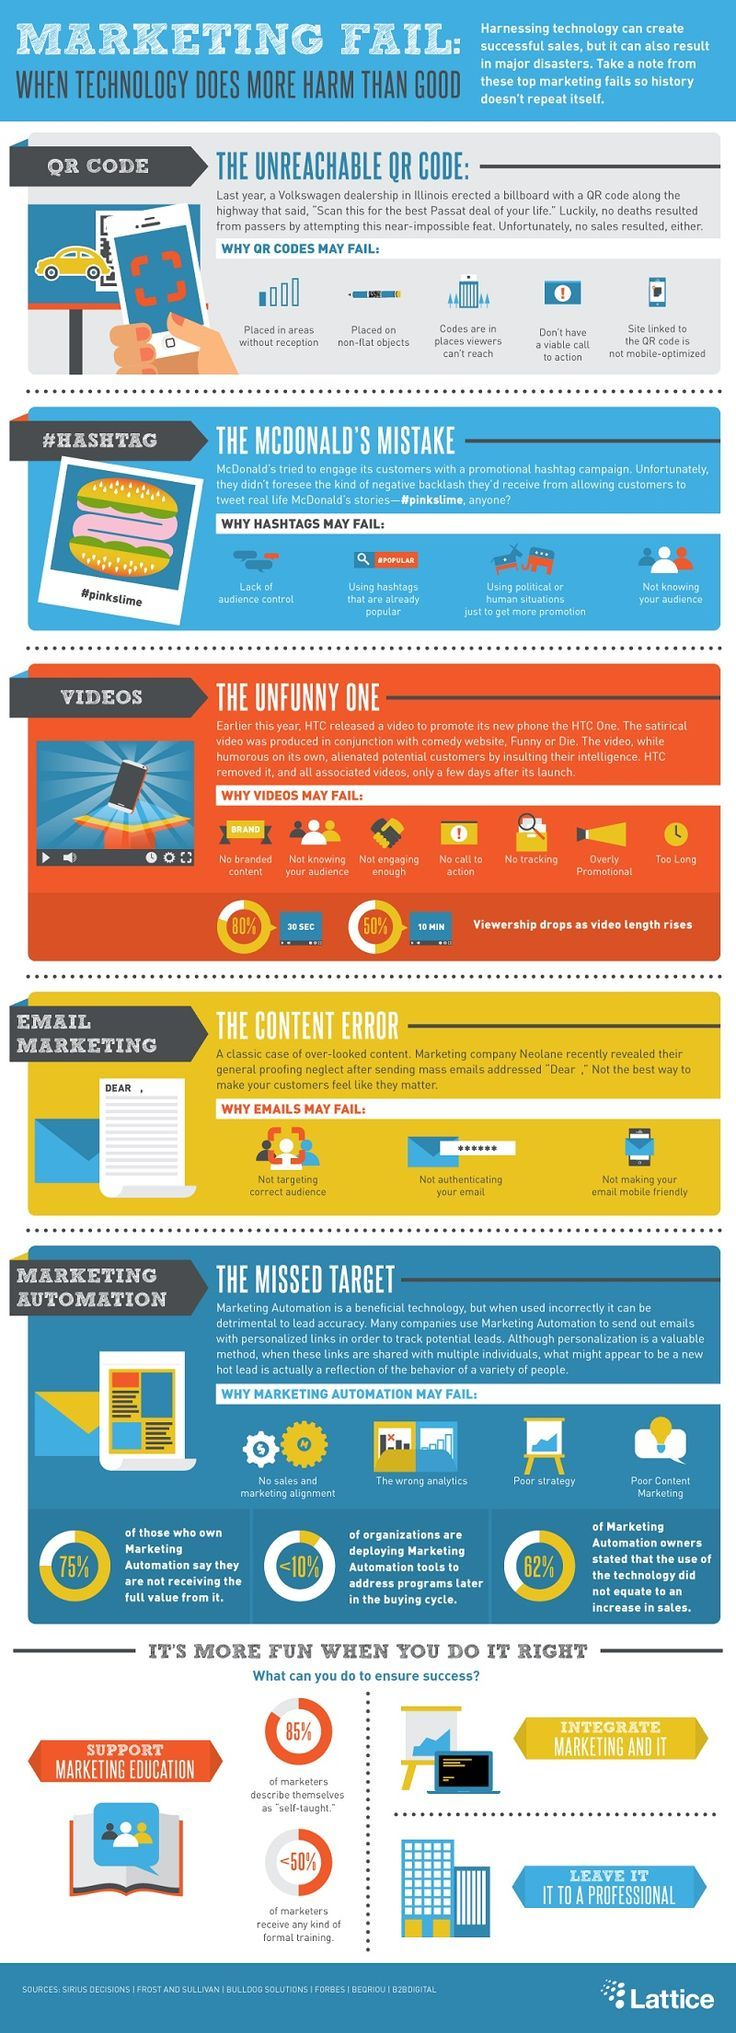 Marketing Fail: A Brand's Cheat Sheet For How Not To Use Social Media And Technology [Infographic